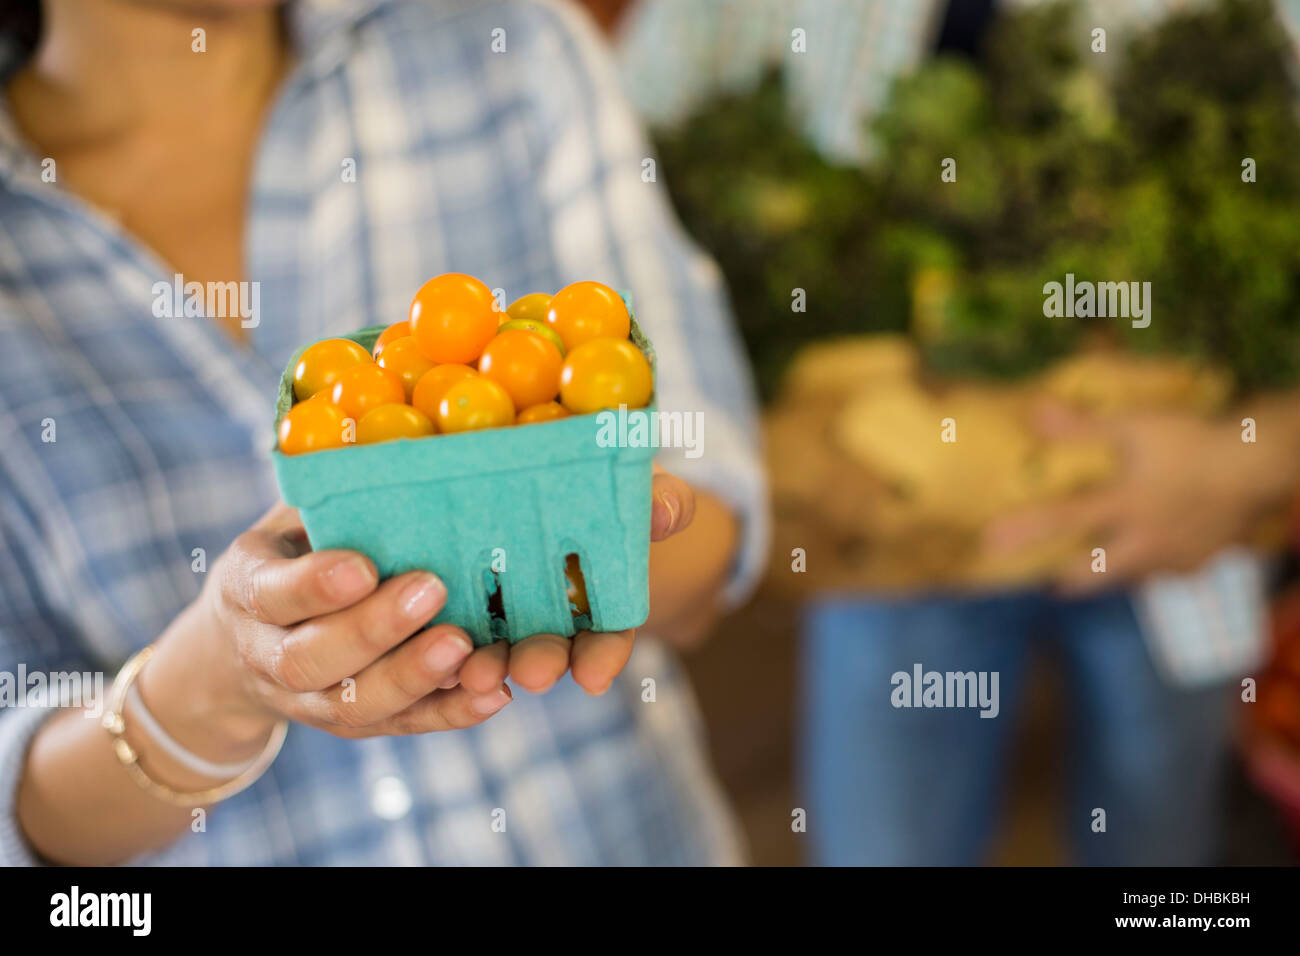 Two people with baskets of tomatoes and curly green leafy vegetables. Working on an organic farm. - Stock Image